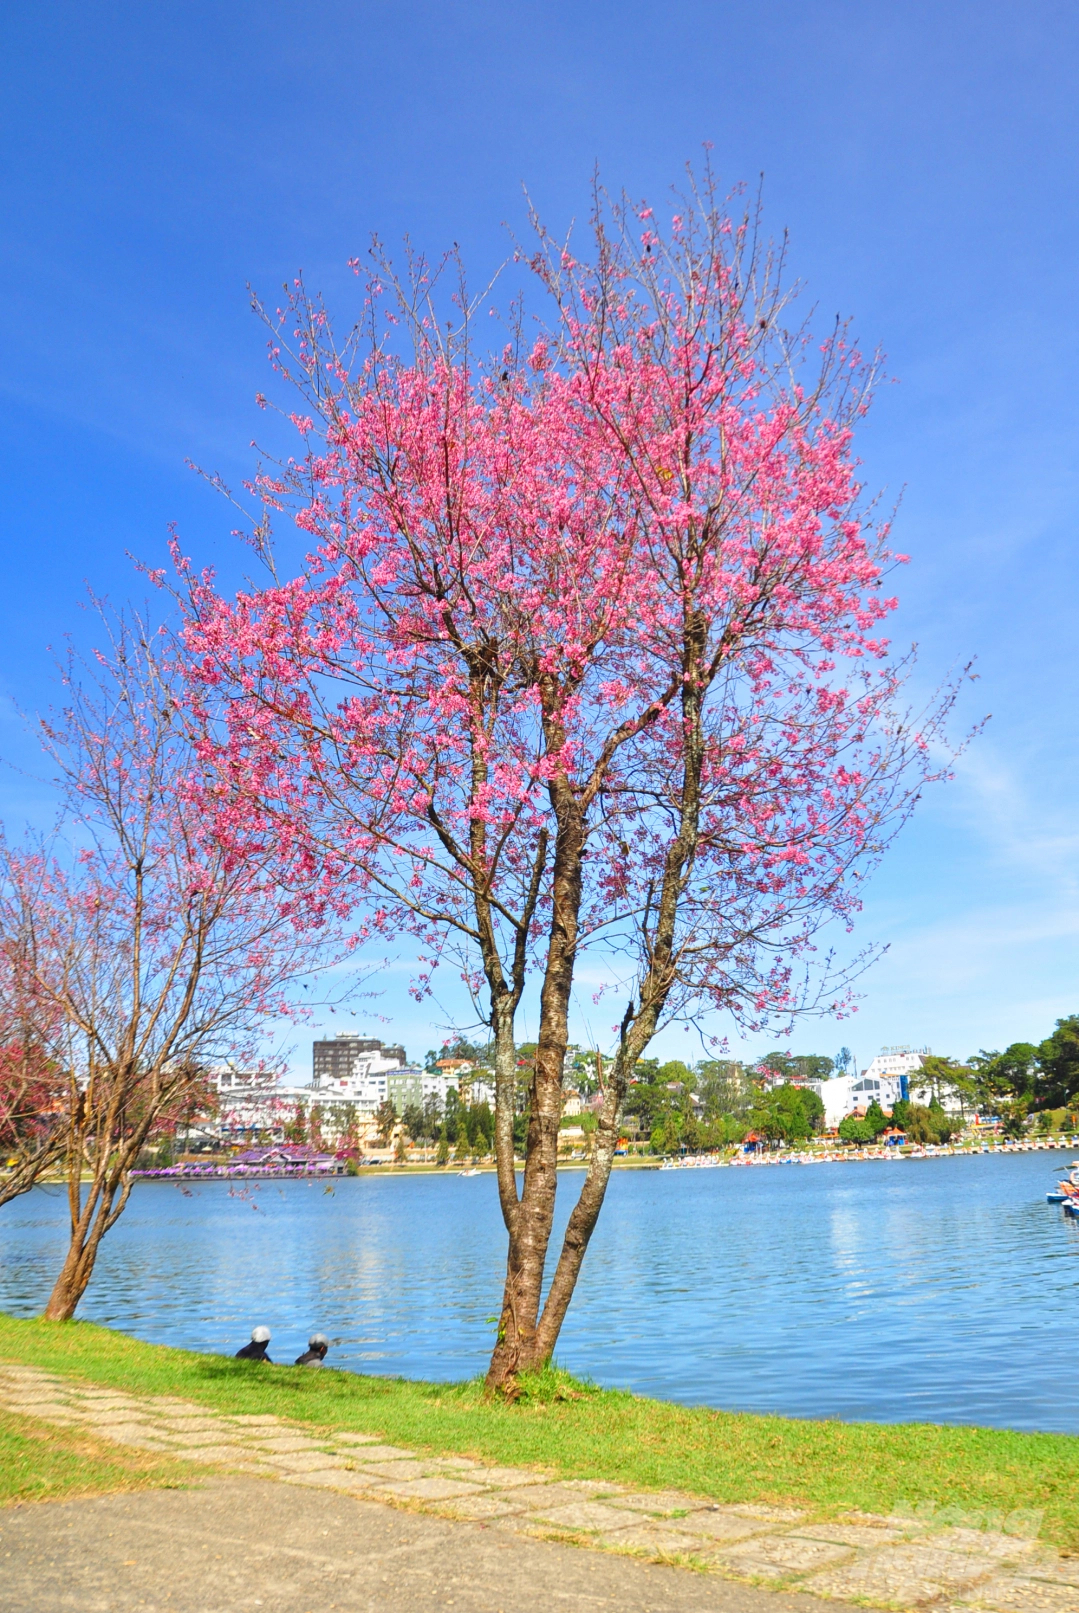 Da Lat puts on romantic outfit with pink cherry blossoms